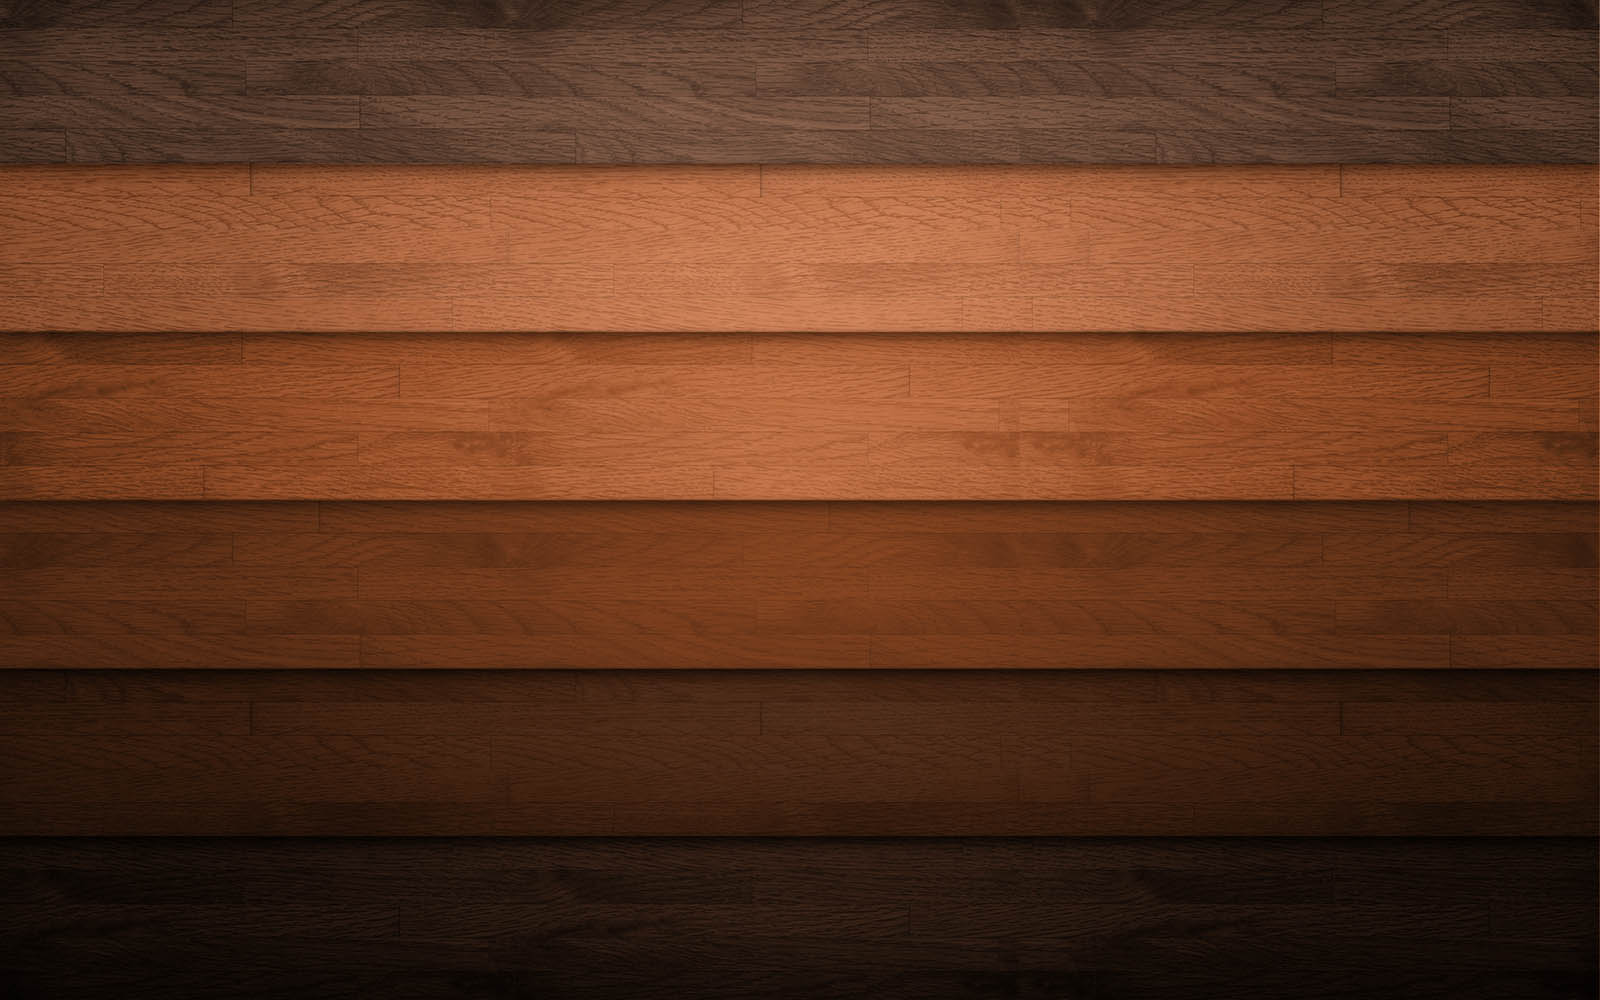 Table Wood Texture Wallpaper